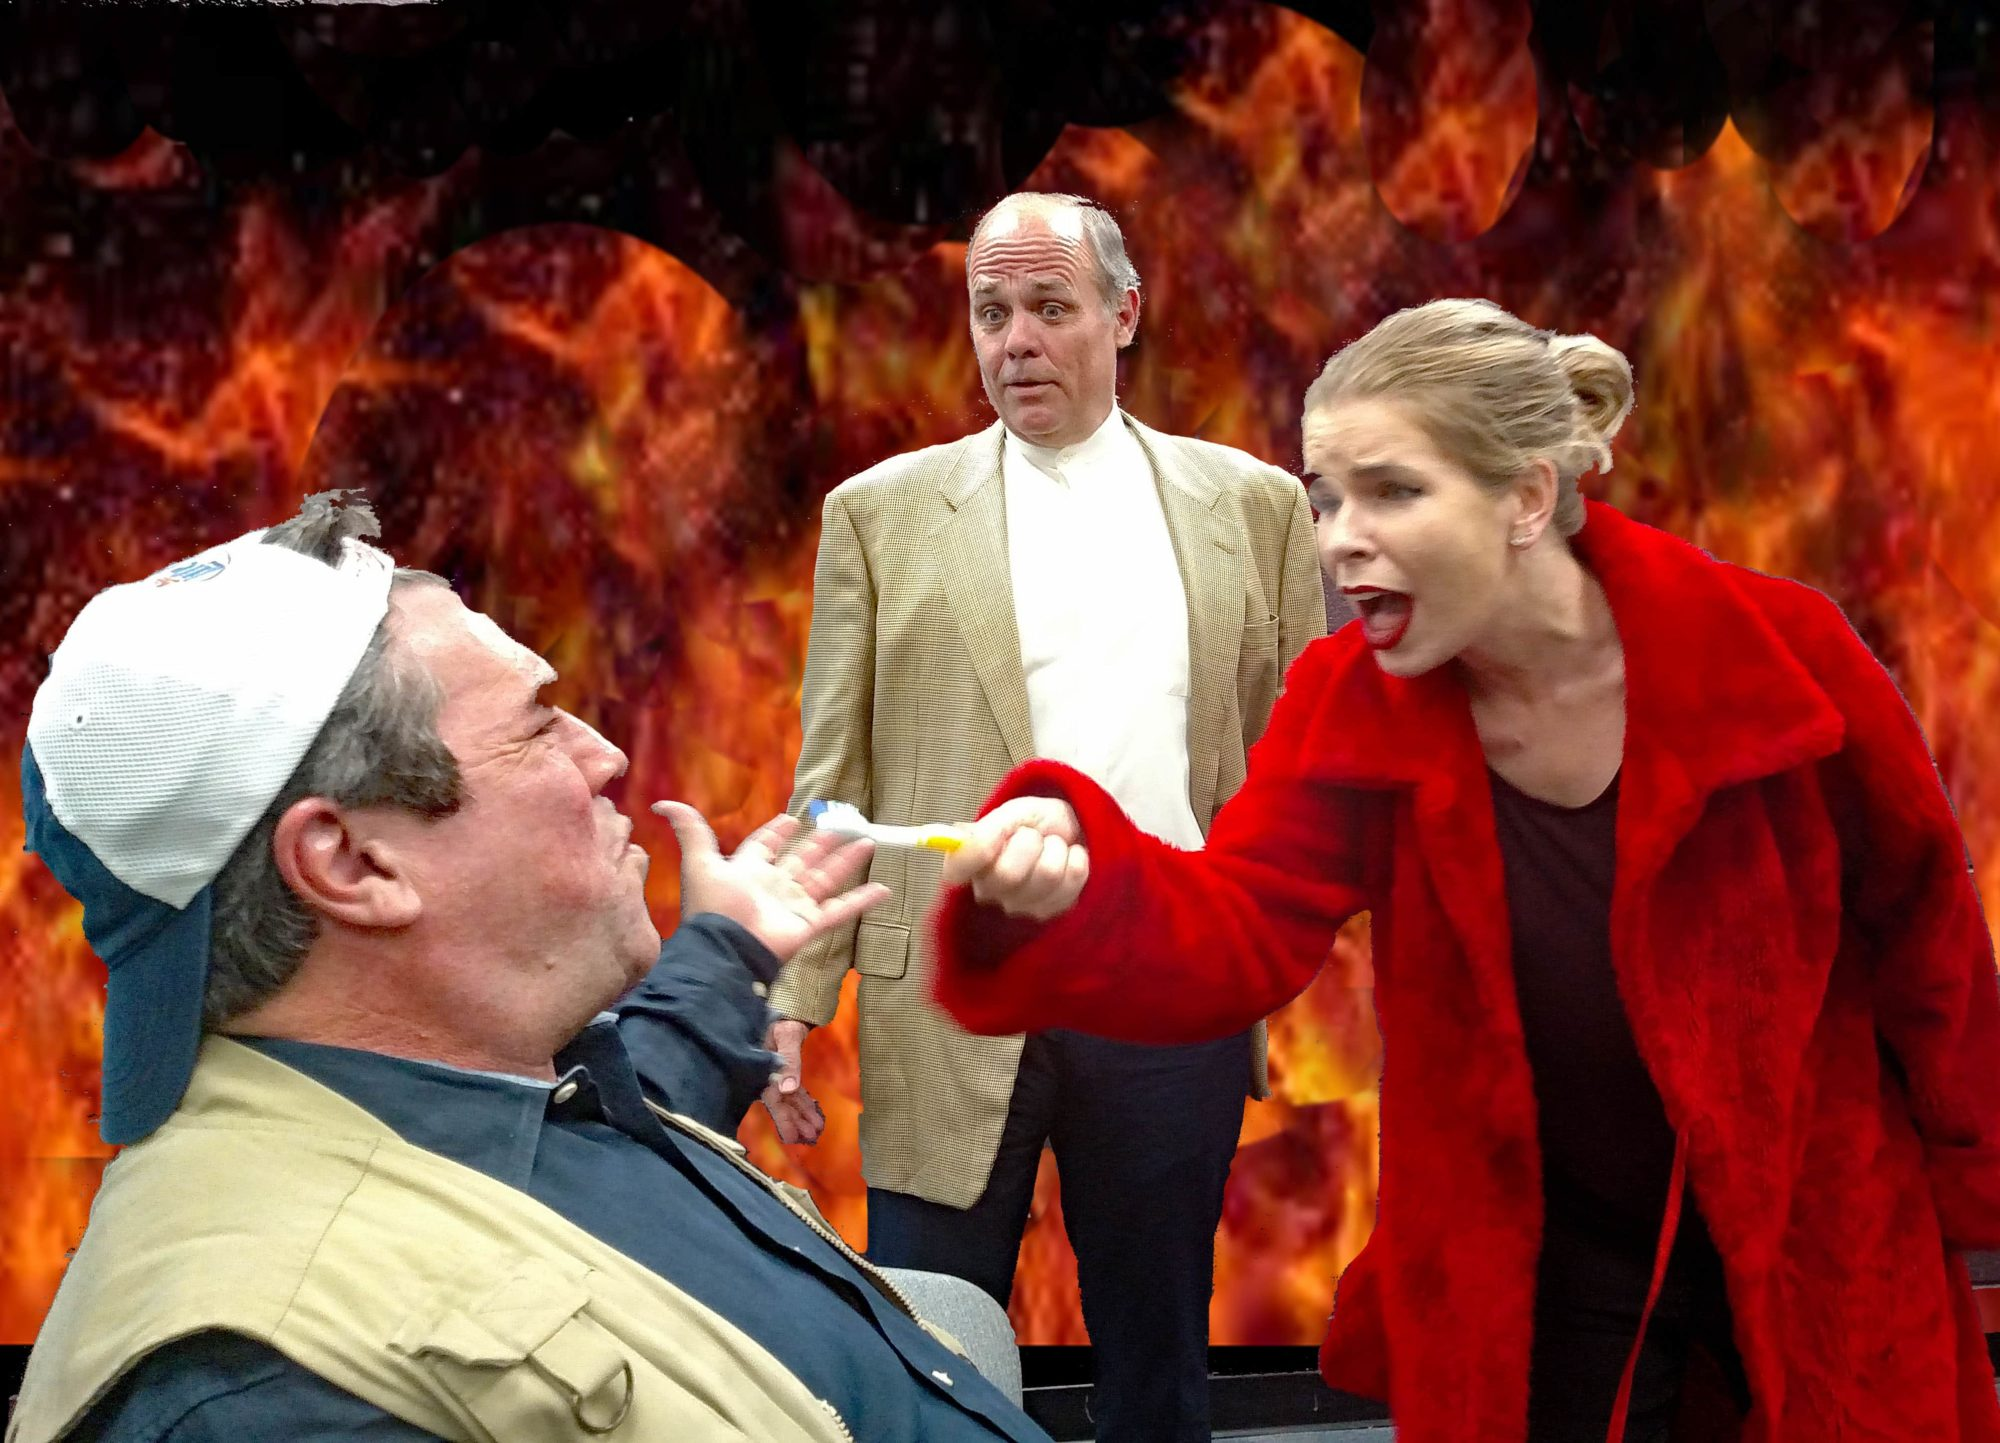 Michael Donahue as the Interrogator, William Bodie as Bobby Gould and Lindsey June as Glenna. Photo by Thomas Udlock.